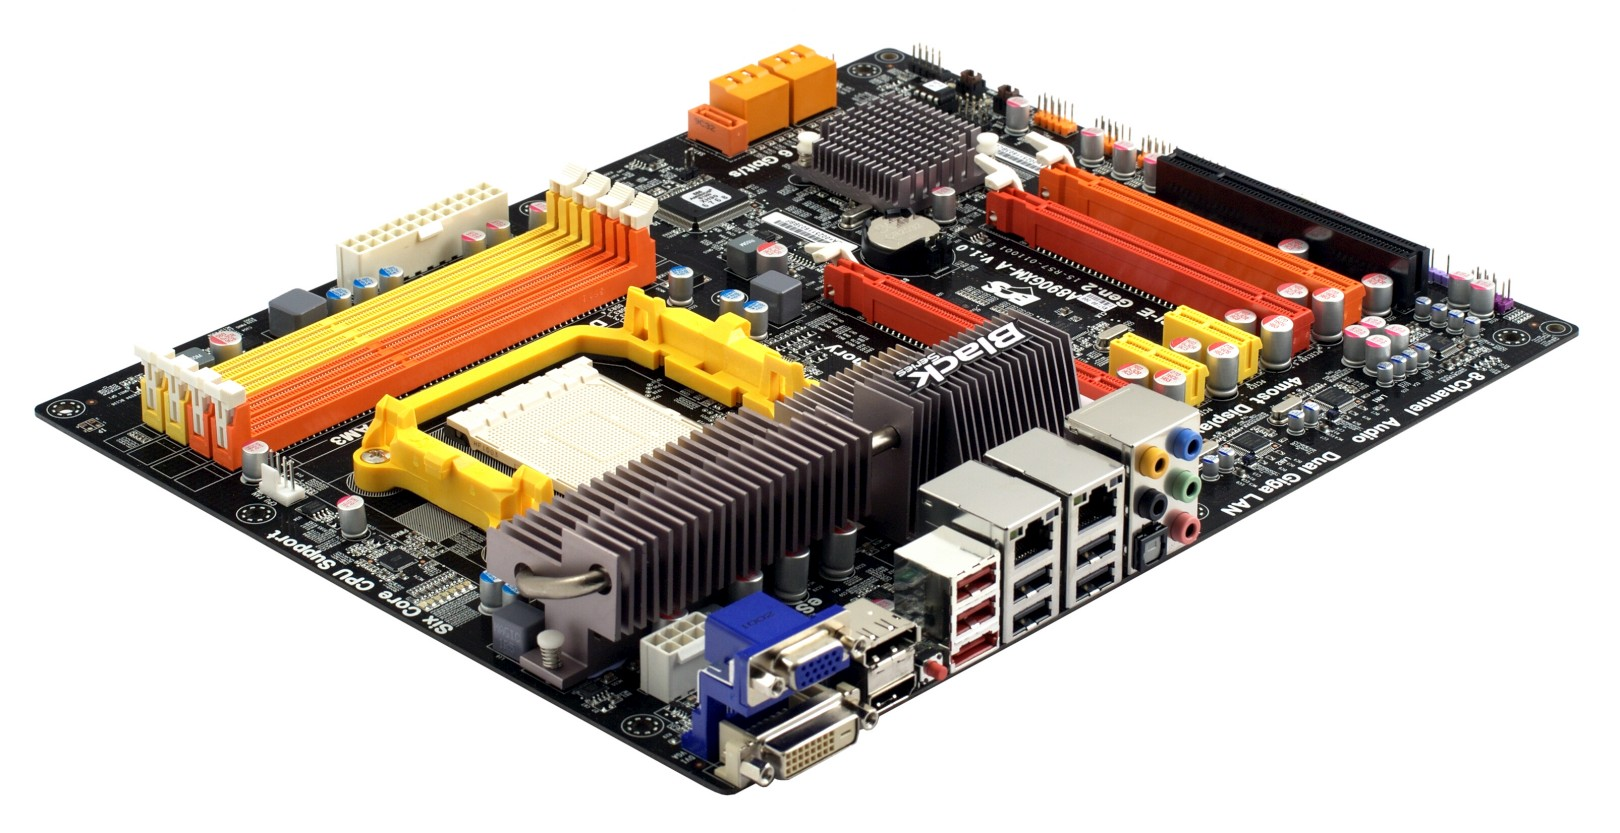 iXBT Labs - ECS A890GXM-A Motherboard - Page 1: Introduction, design